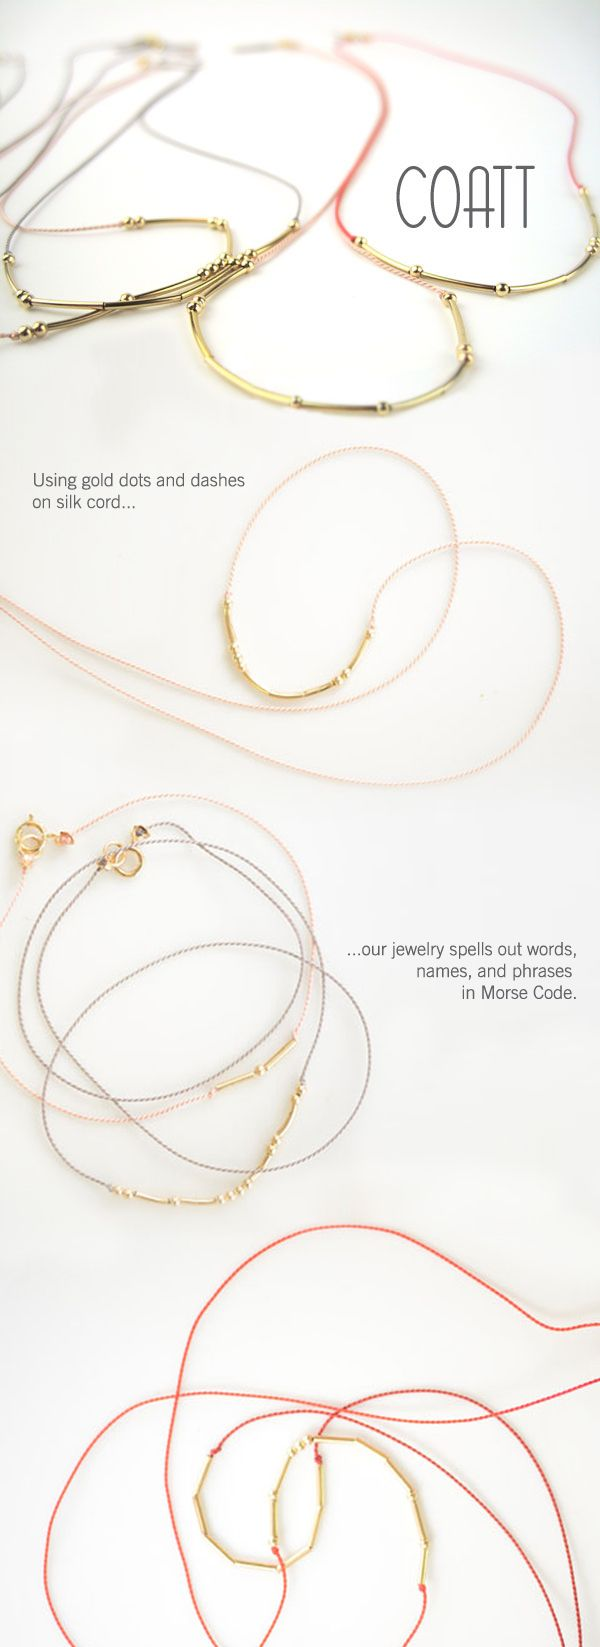 Gift your Bridesmaids with Coatt Jewelry!